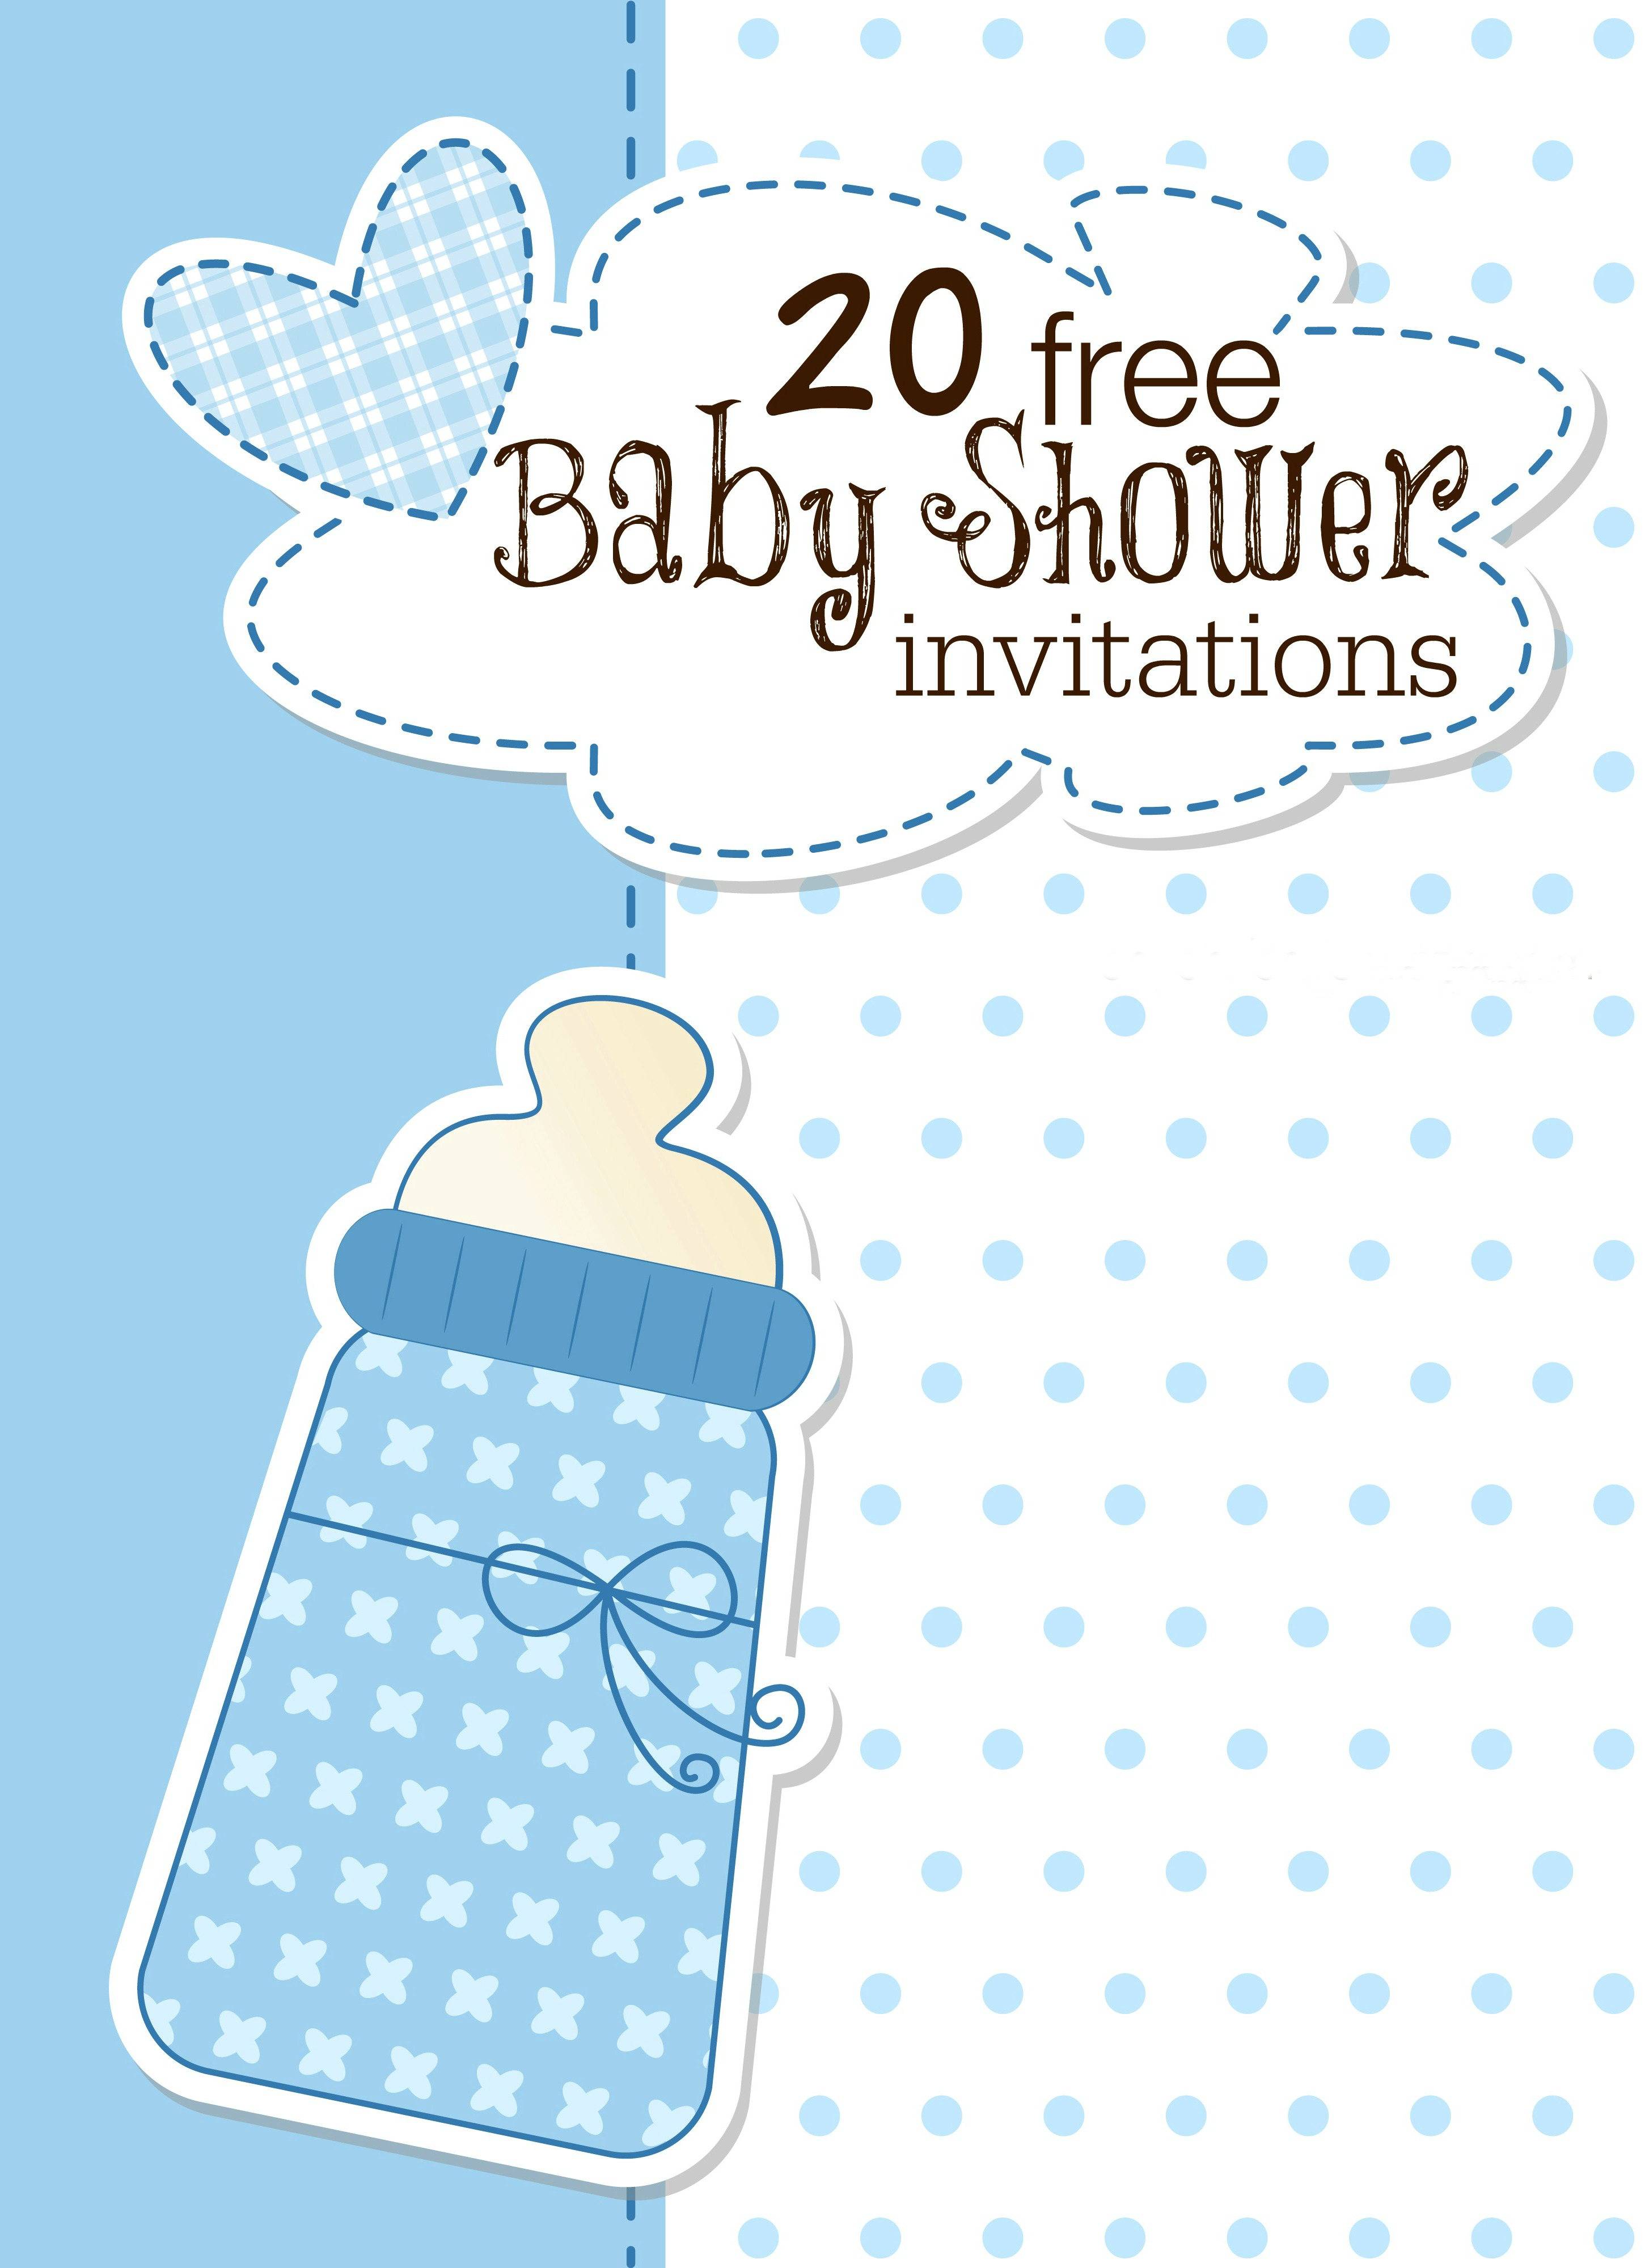 Marvelous CrystalandComp.com Idea Free Baby Shower Invitation Templates Printable